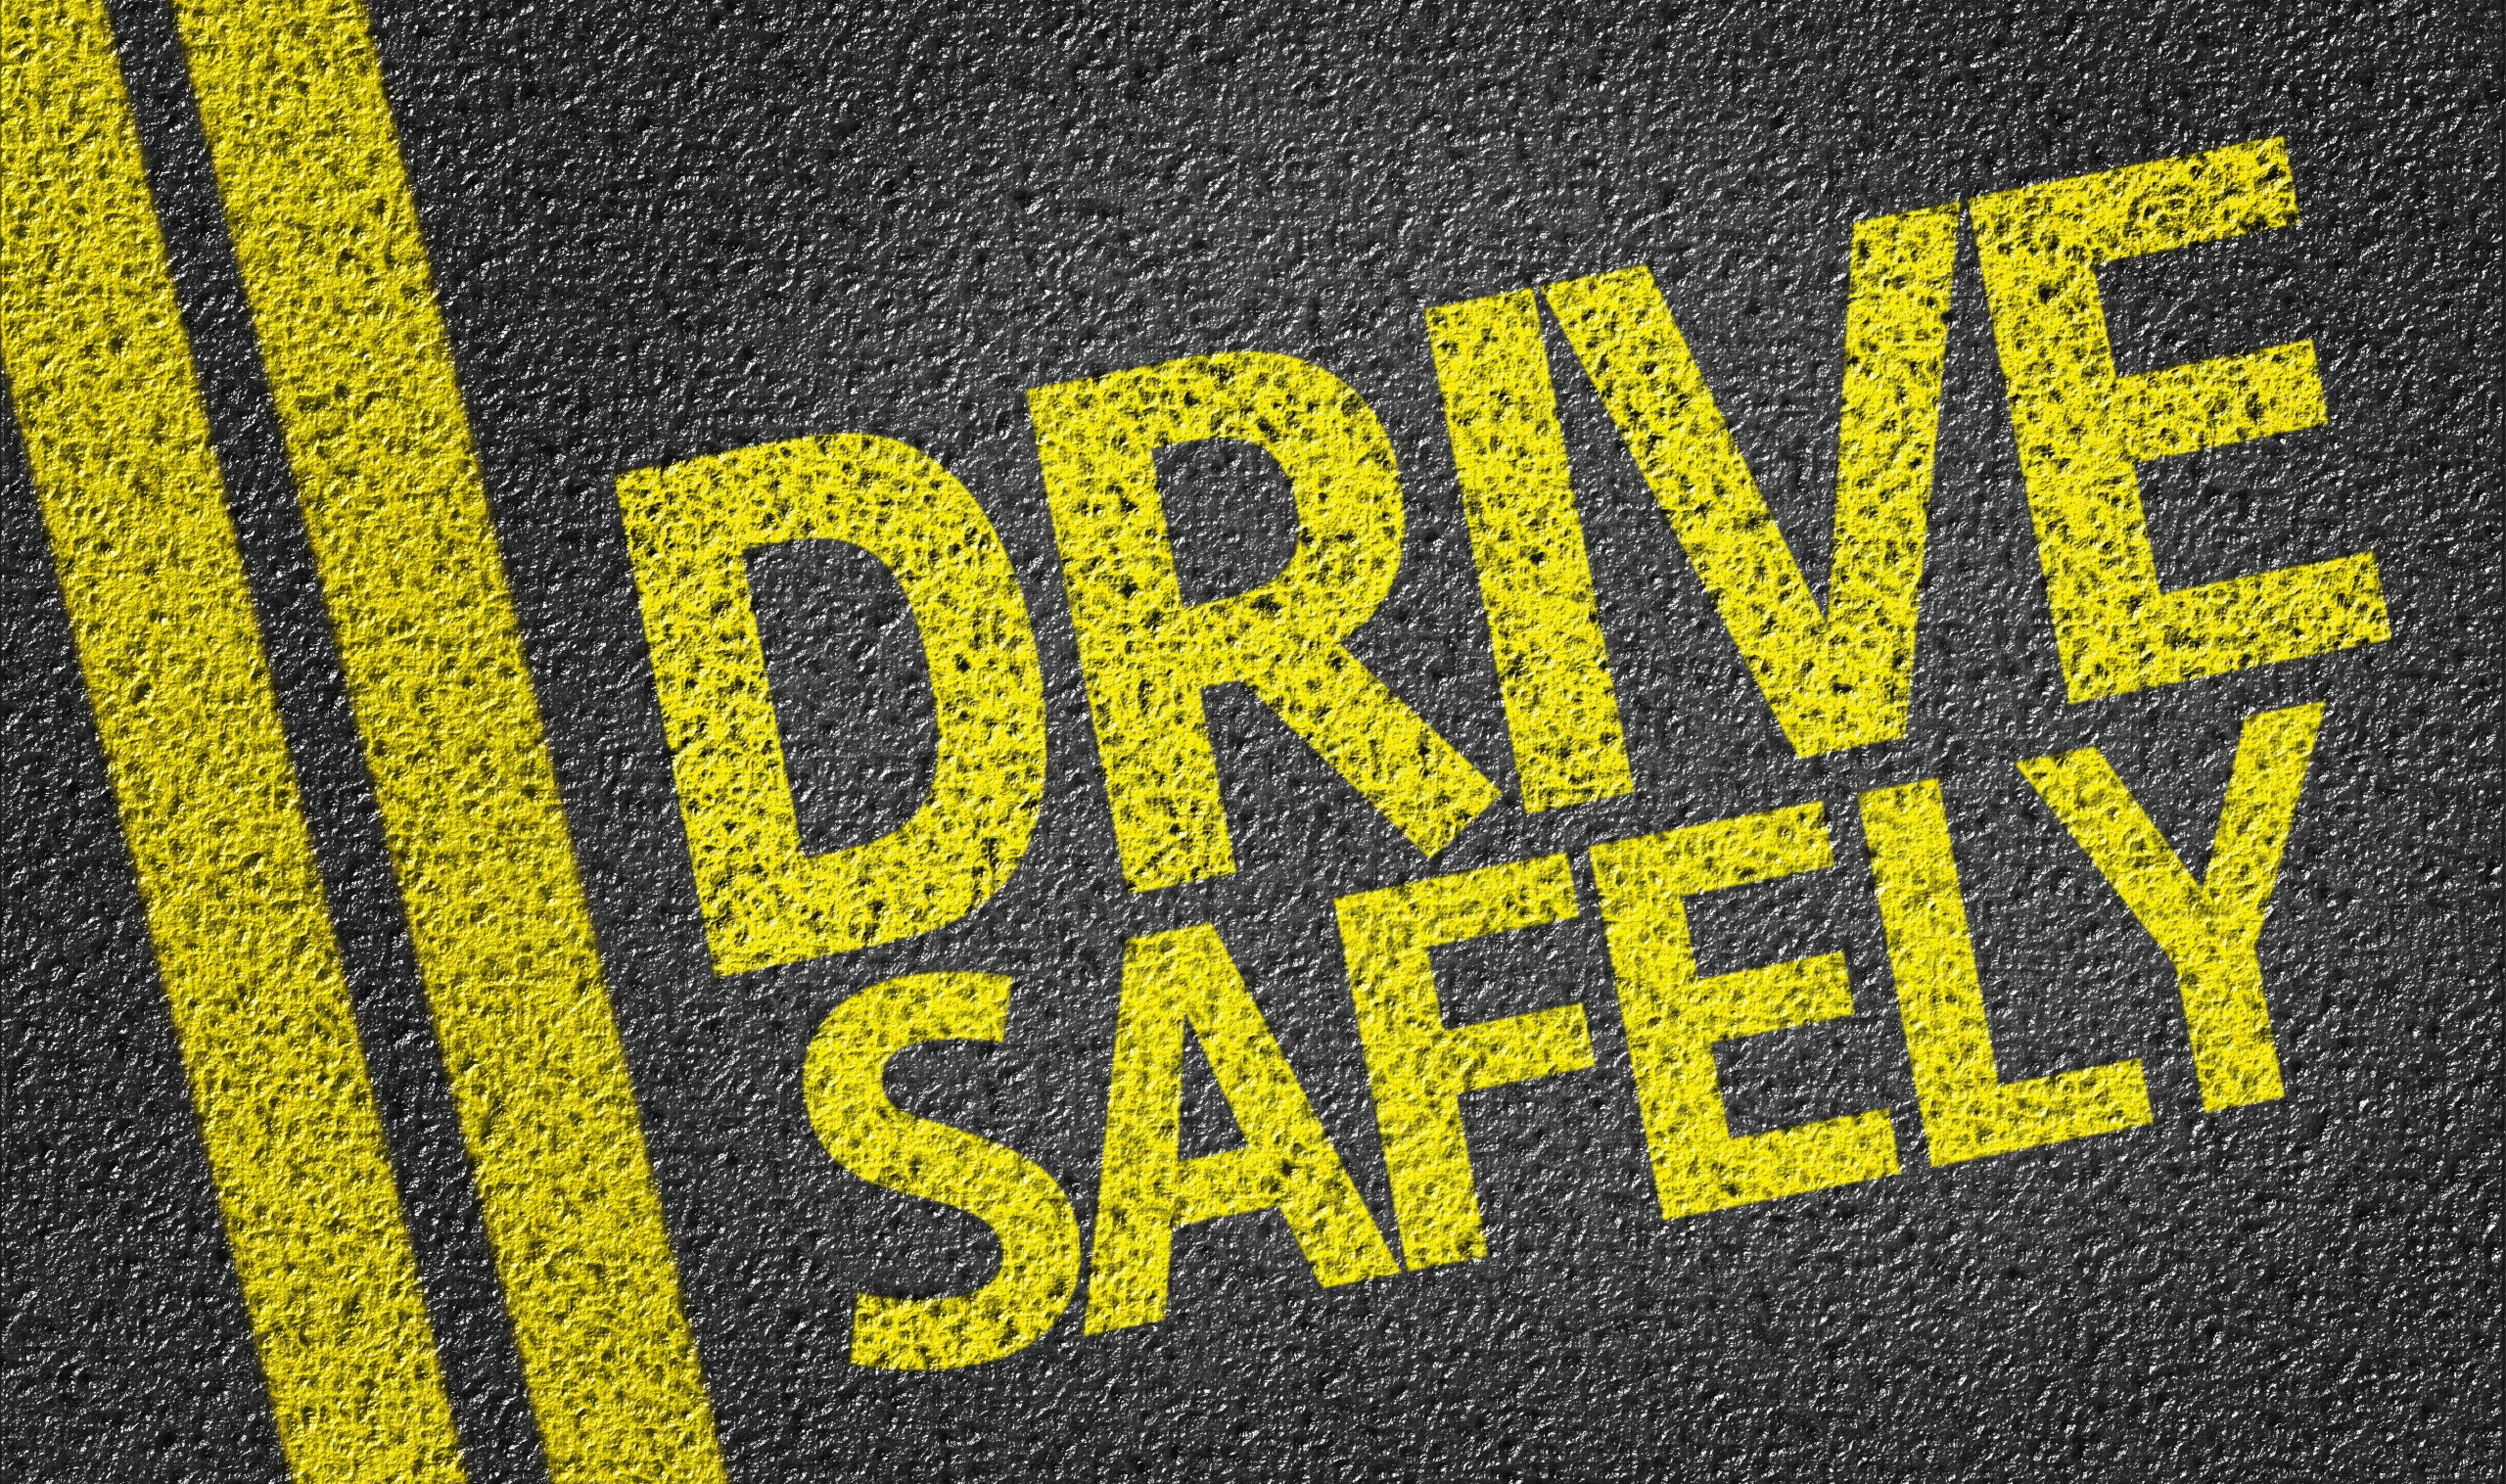 How technology can improve road safety